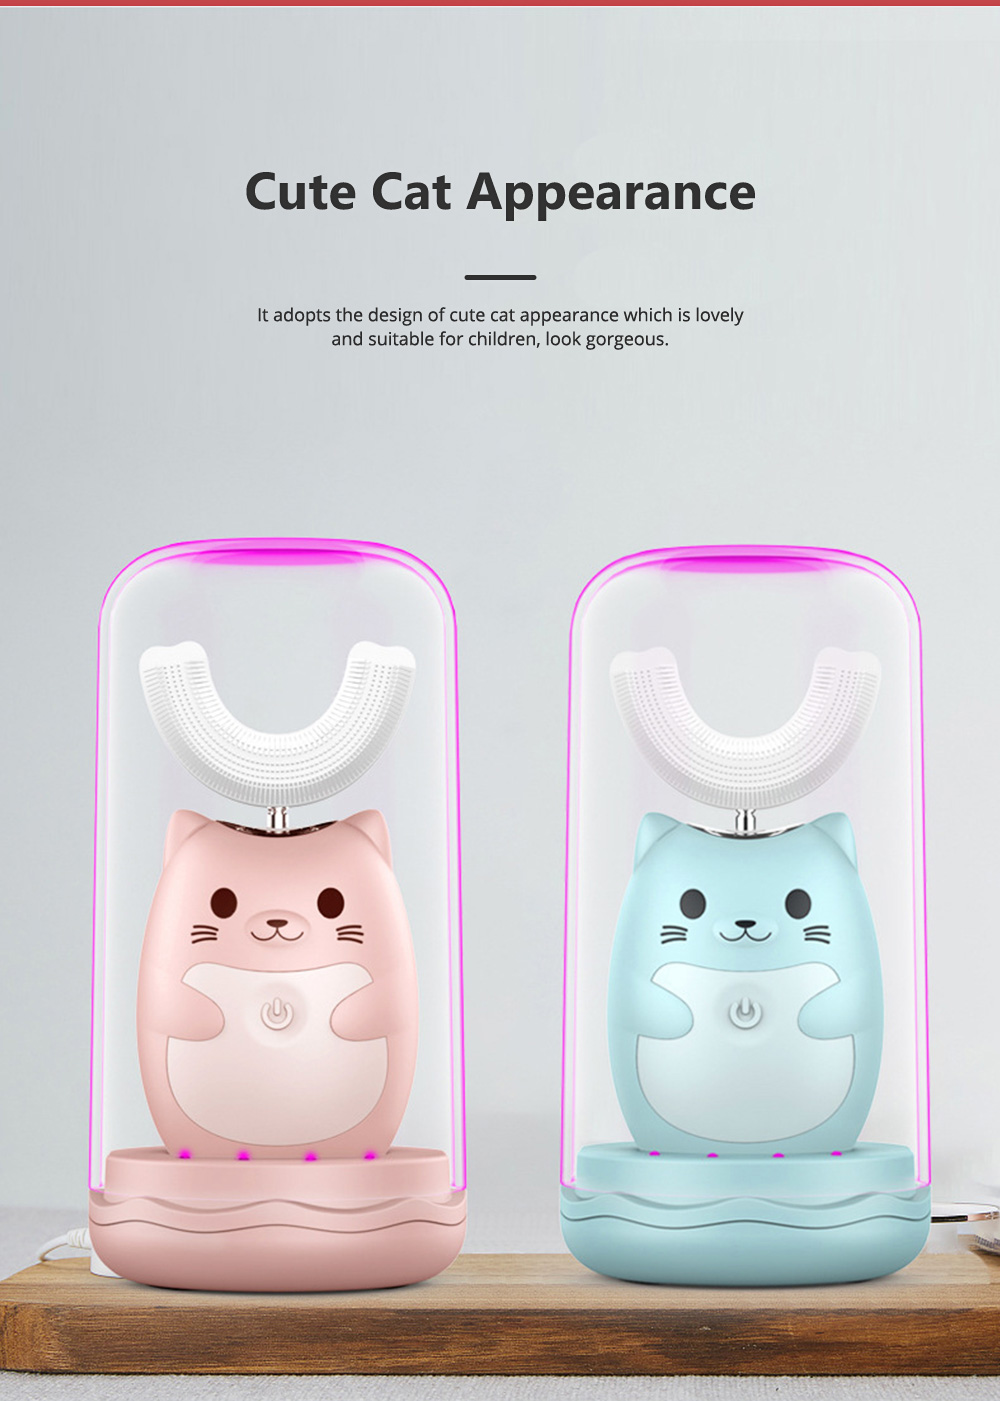 Electric Toothbrush for Children Cute Cat Appearance Three Gears U Shape Brush Waterproof Magnetic Suction Charging Brush Tool 2